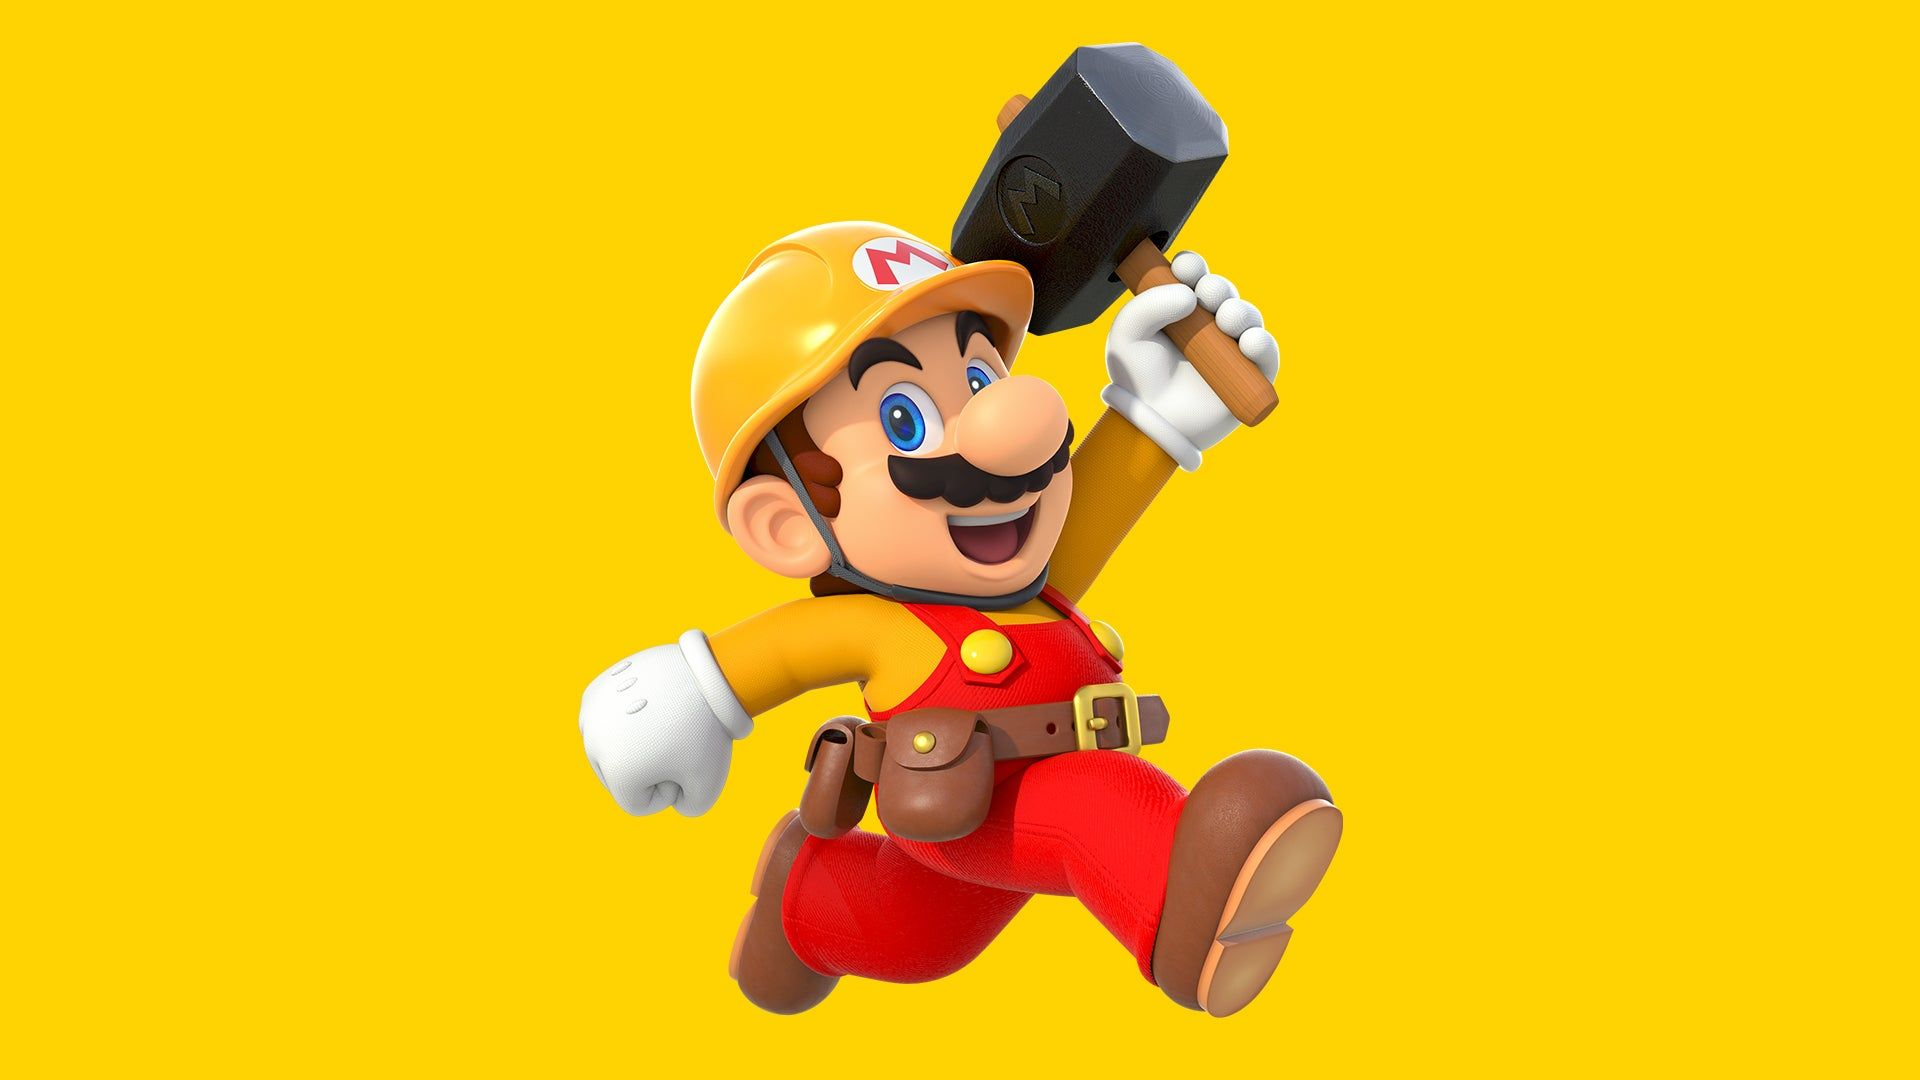 Super Mario Maker 2 Building Levels Destroying Friendships